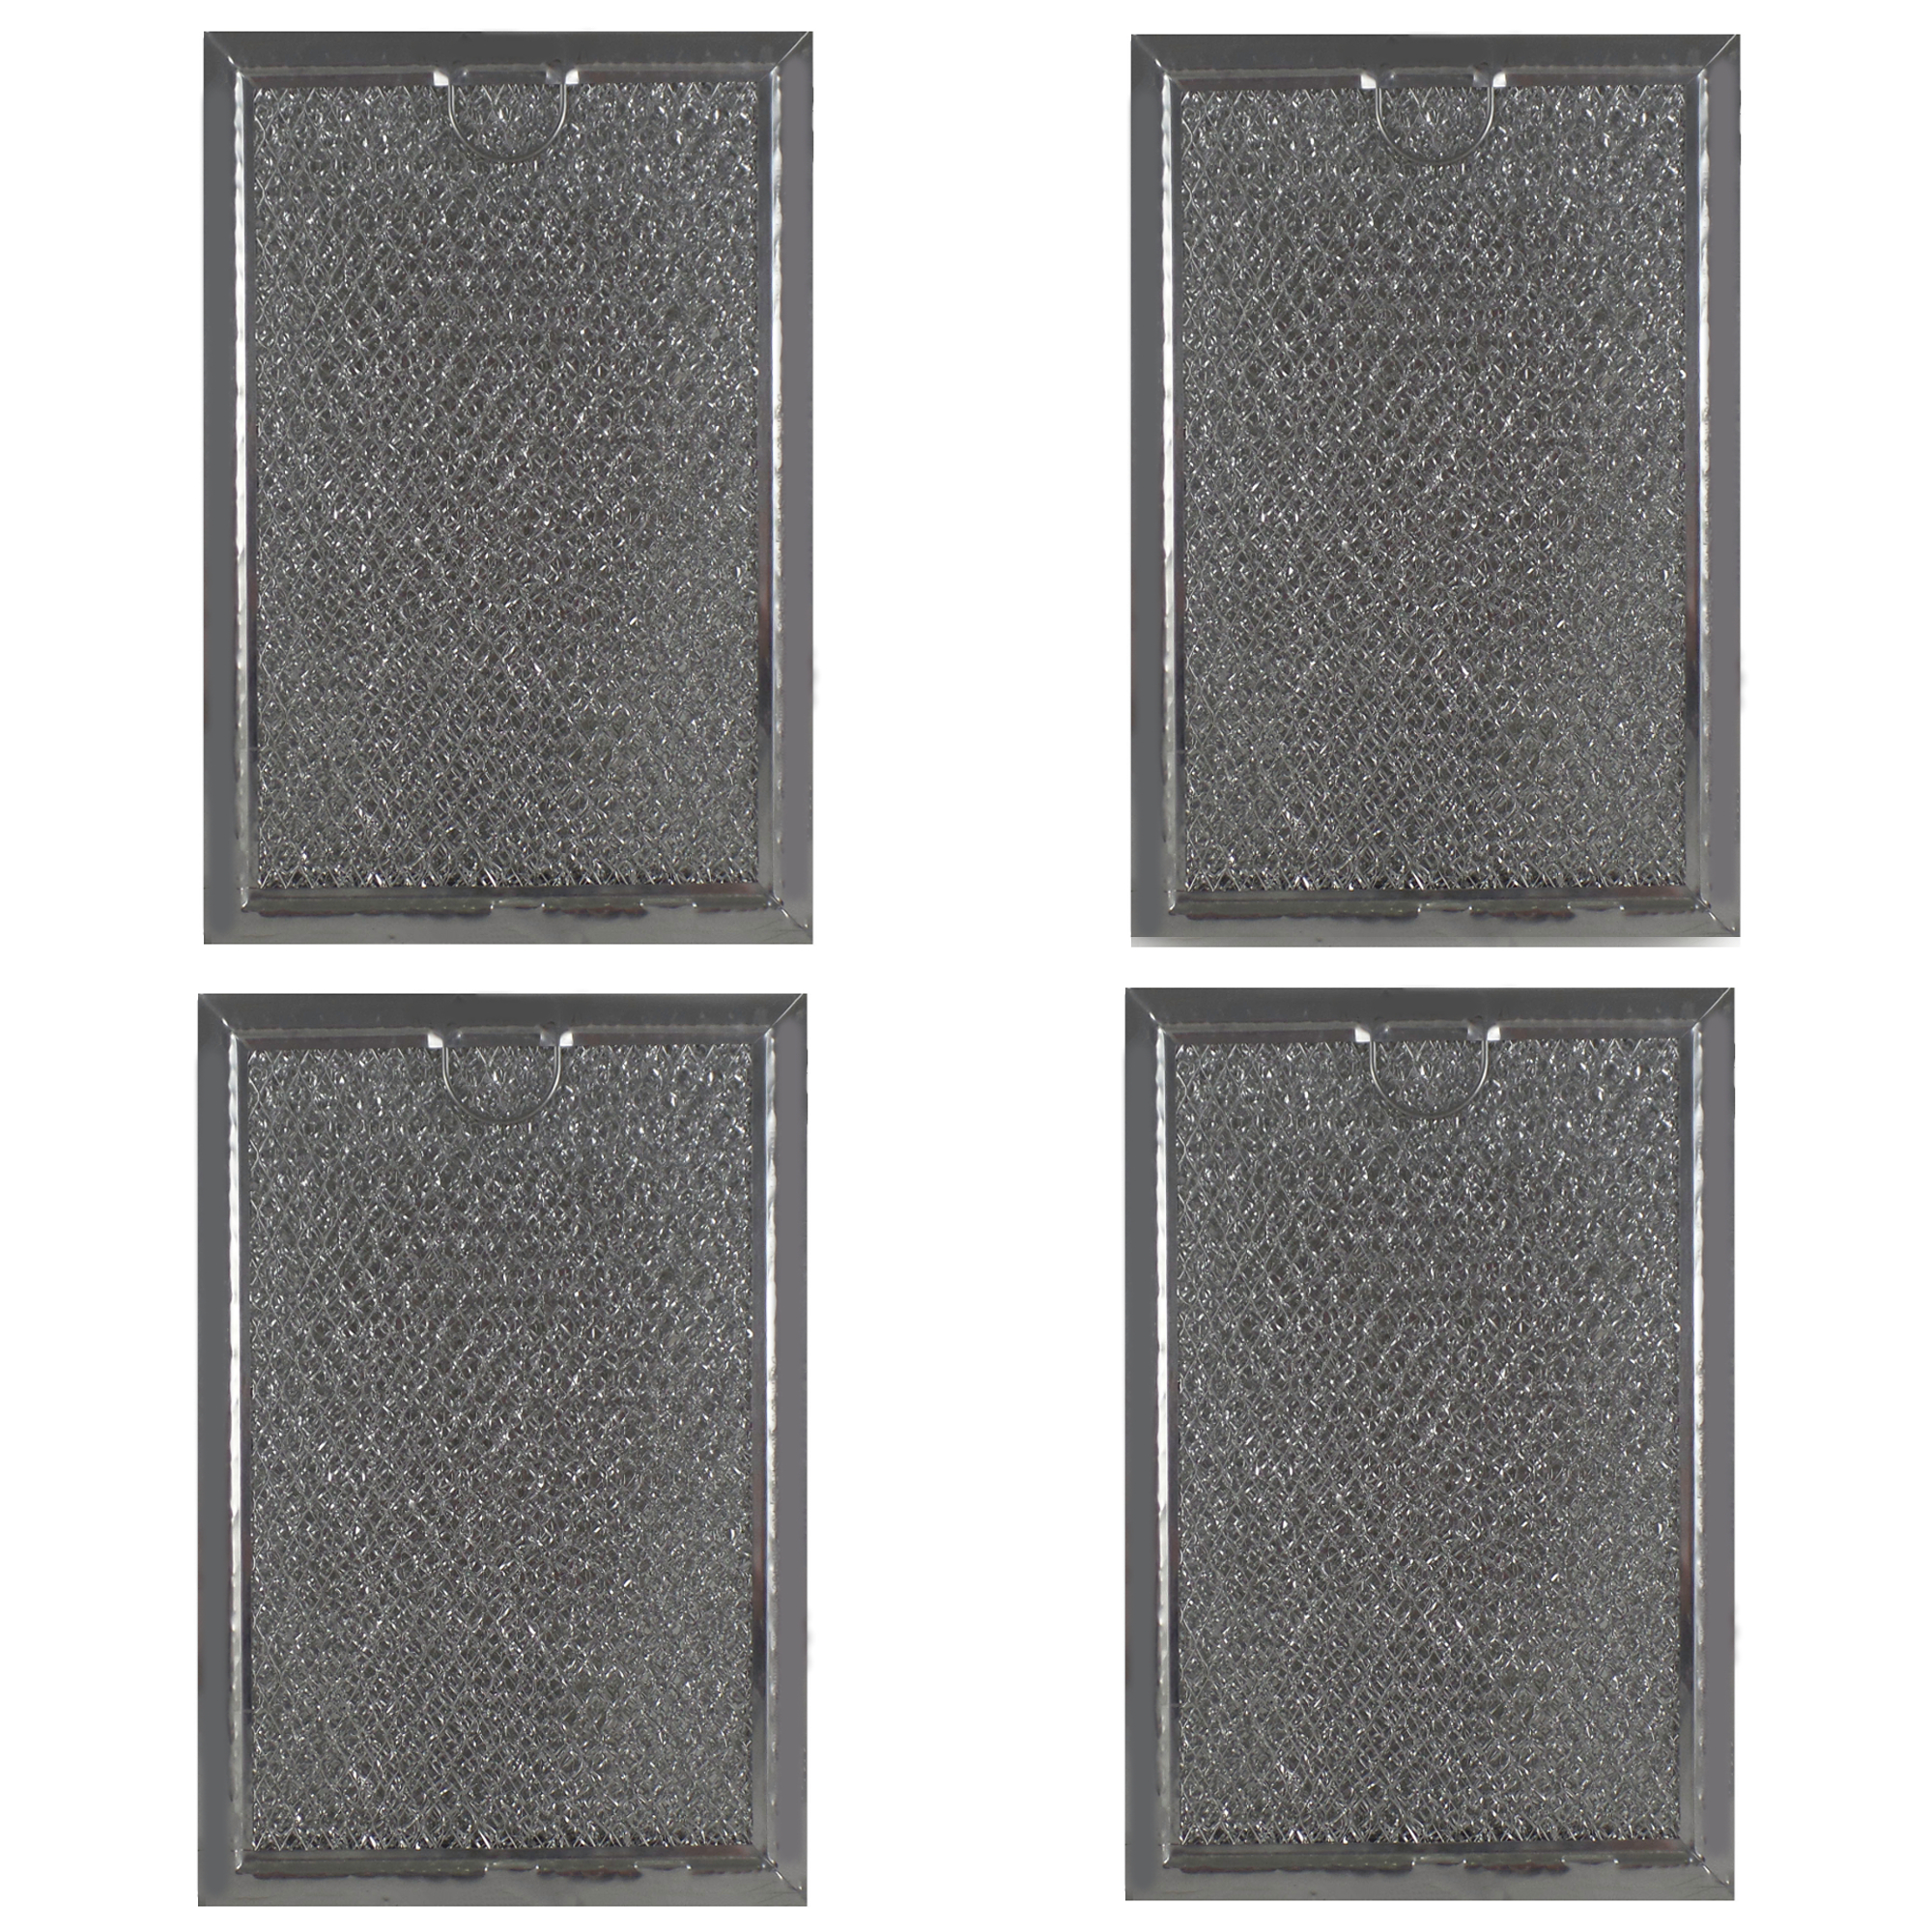 grease filter for whirlpool microwave 5 1 16 x 7 5 8 x 3 32 4 pack